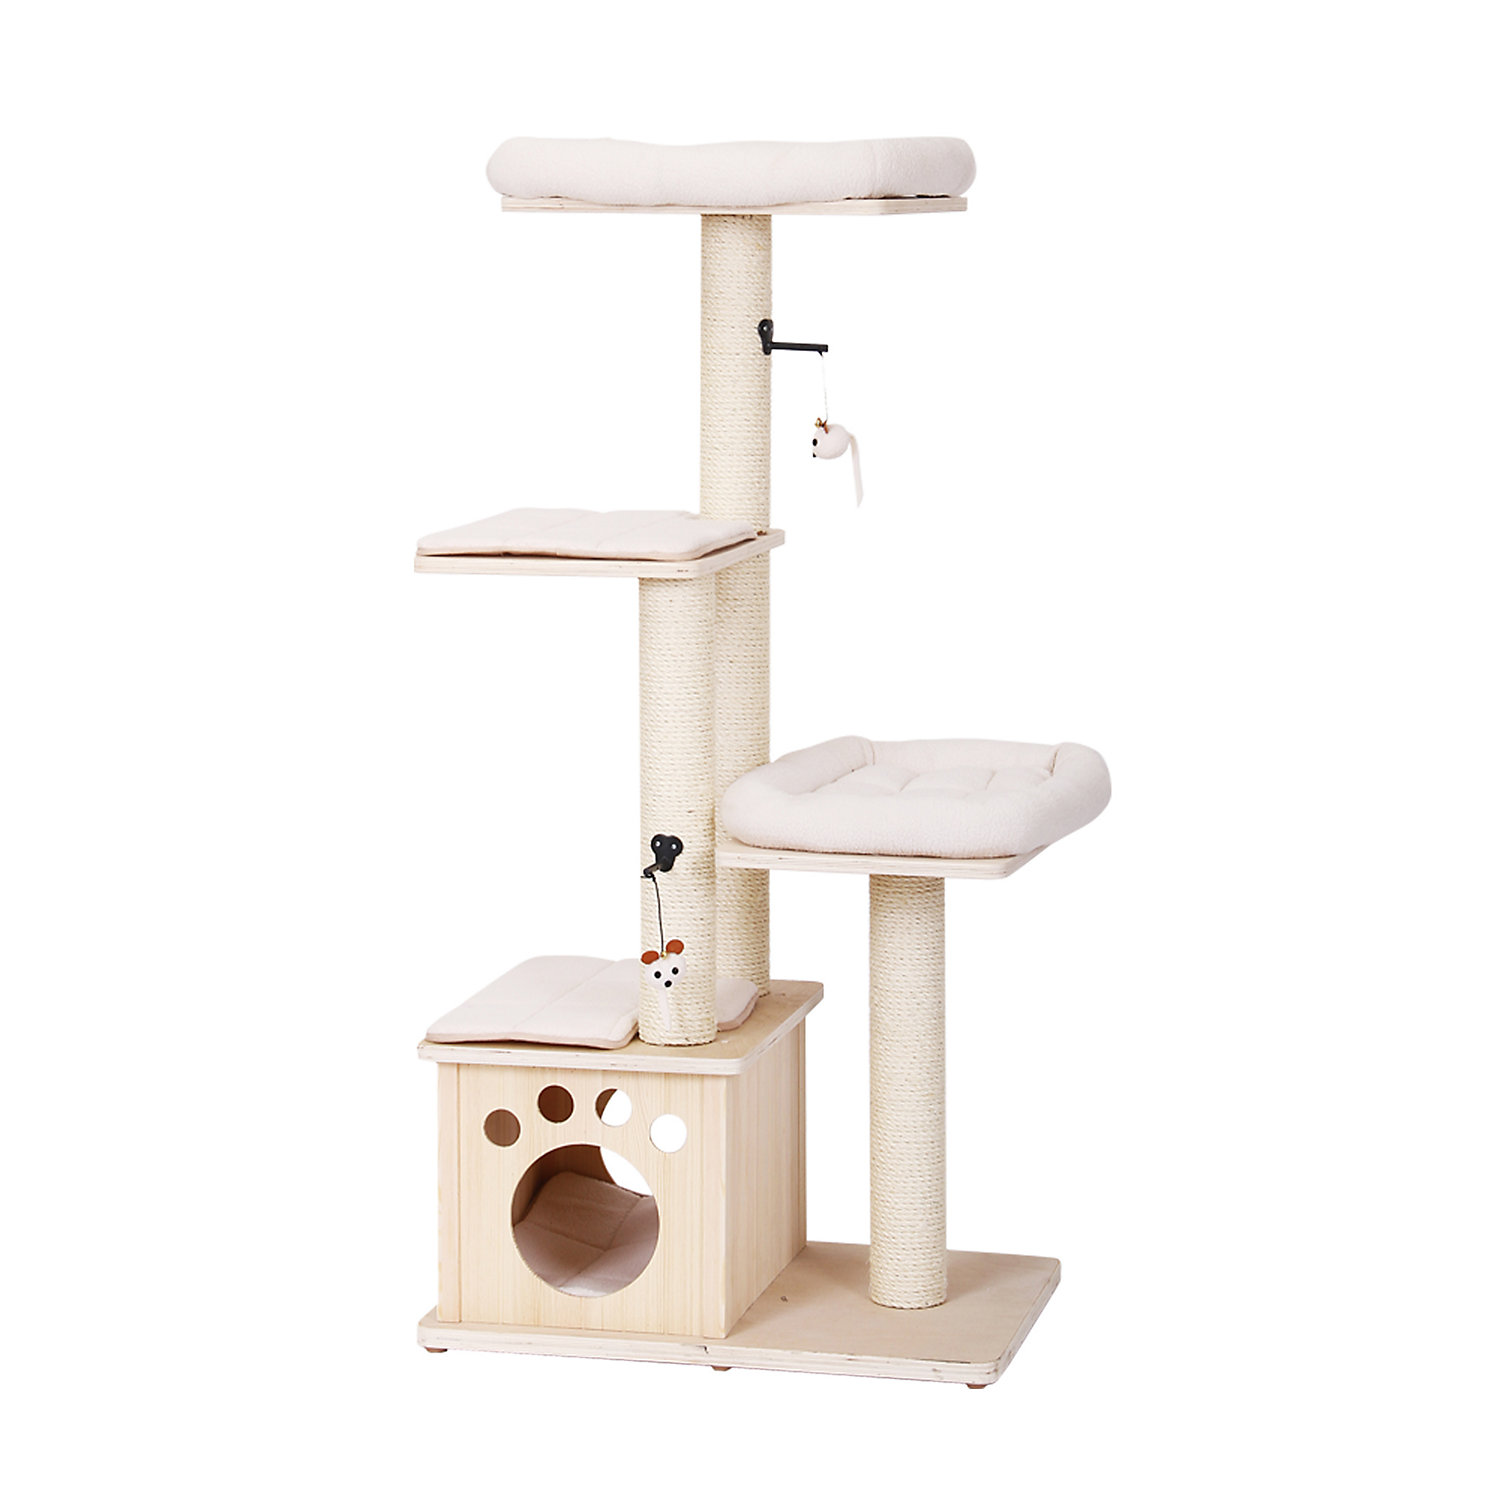 PetPals Group Abode Natural Wood Four Level Cat Tree With Condo 28 L X 20 W X 56 H 41 LB OffWhite  OffWhite